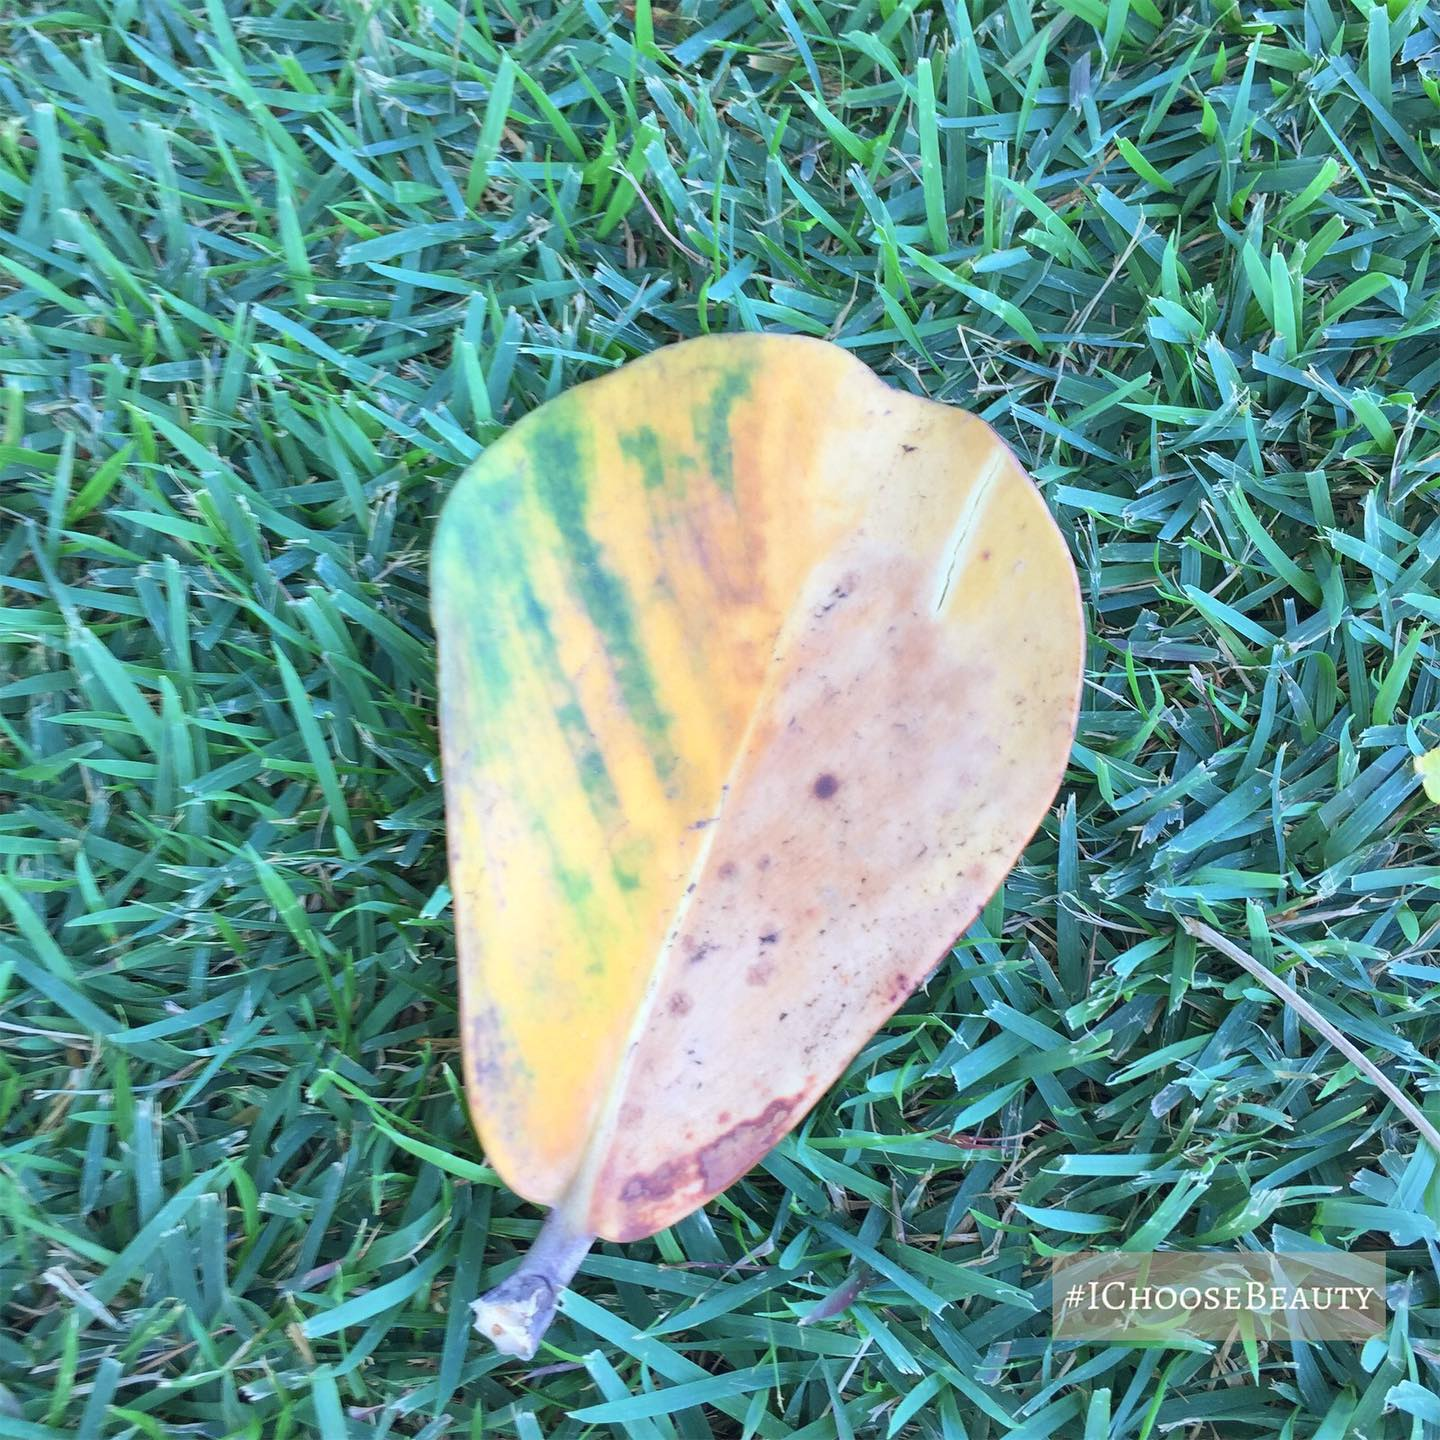 I love how the two halves of this leaf are different colors!  #ichoosebeauty Day 2472